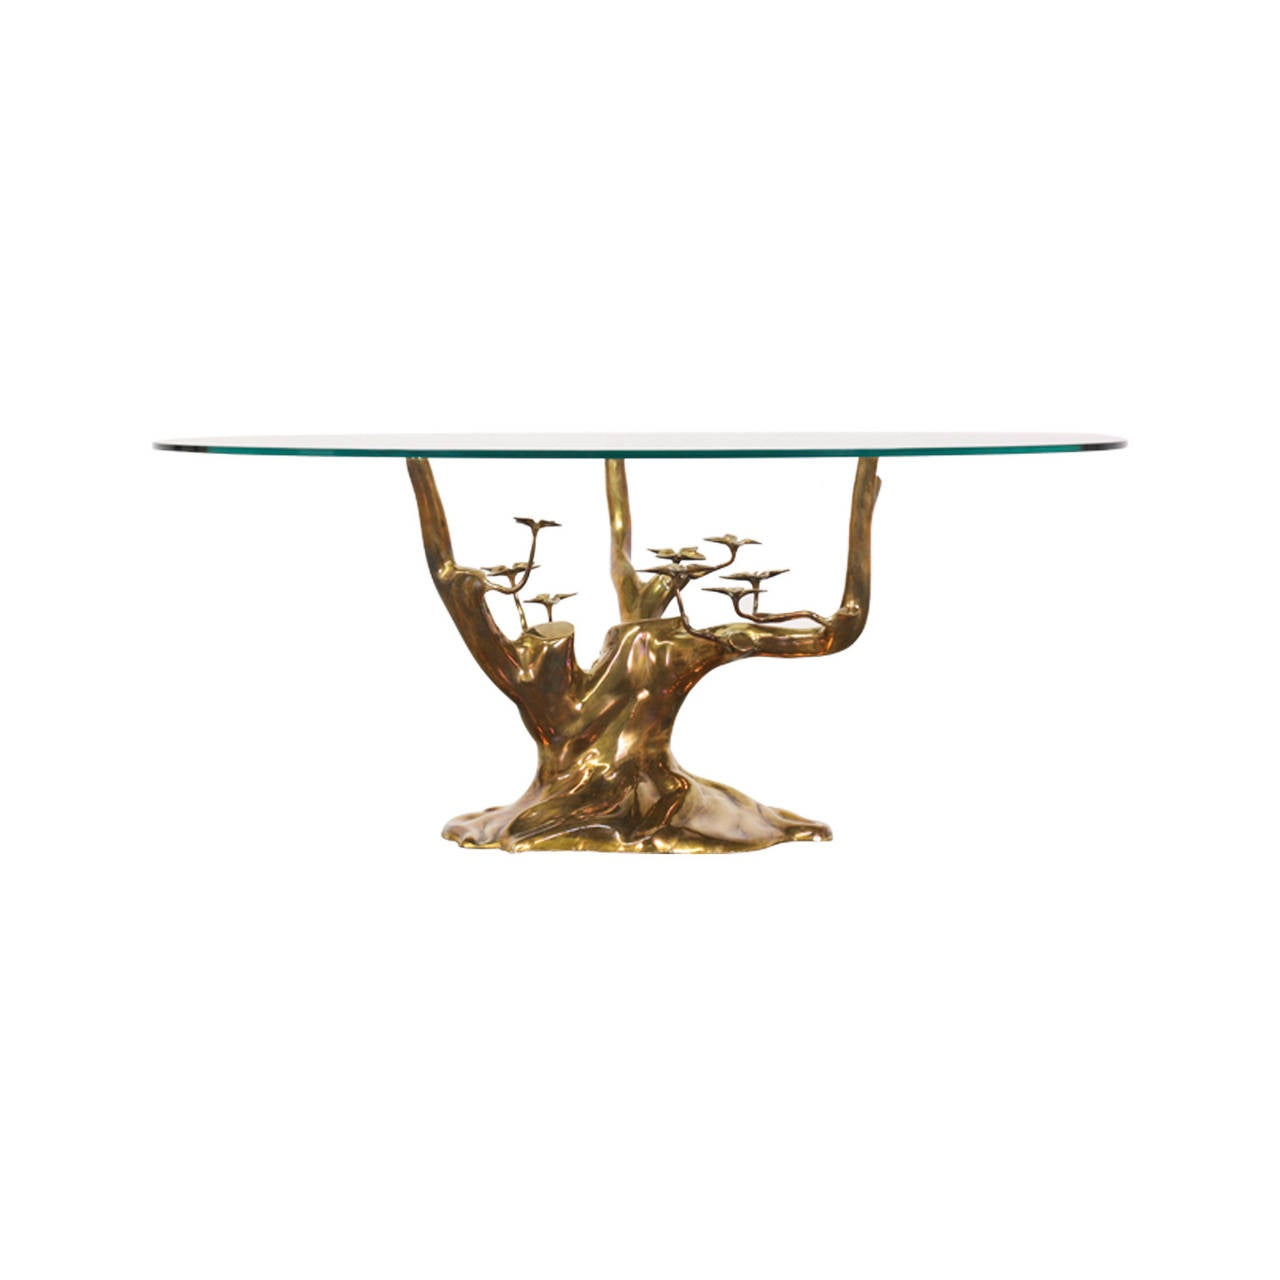 Vintage Brass Tree Sculpture Coffee Table Attributed To Willy Daro Image 4